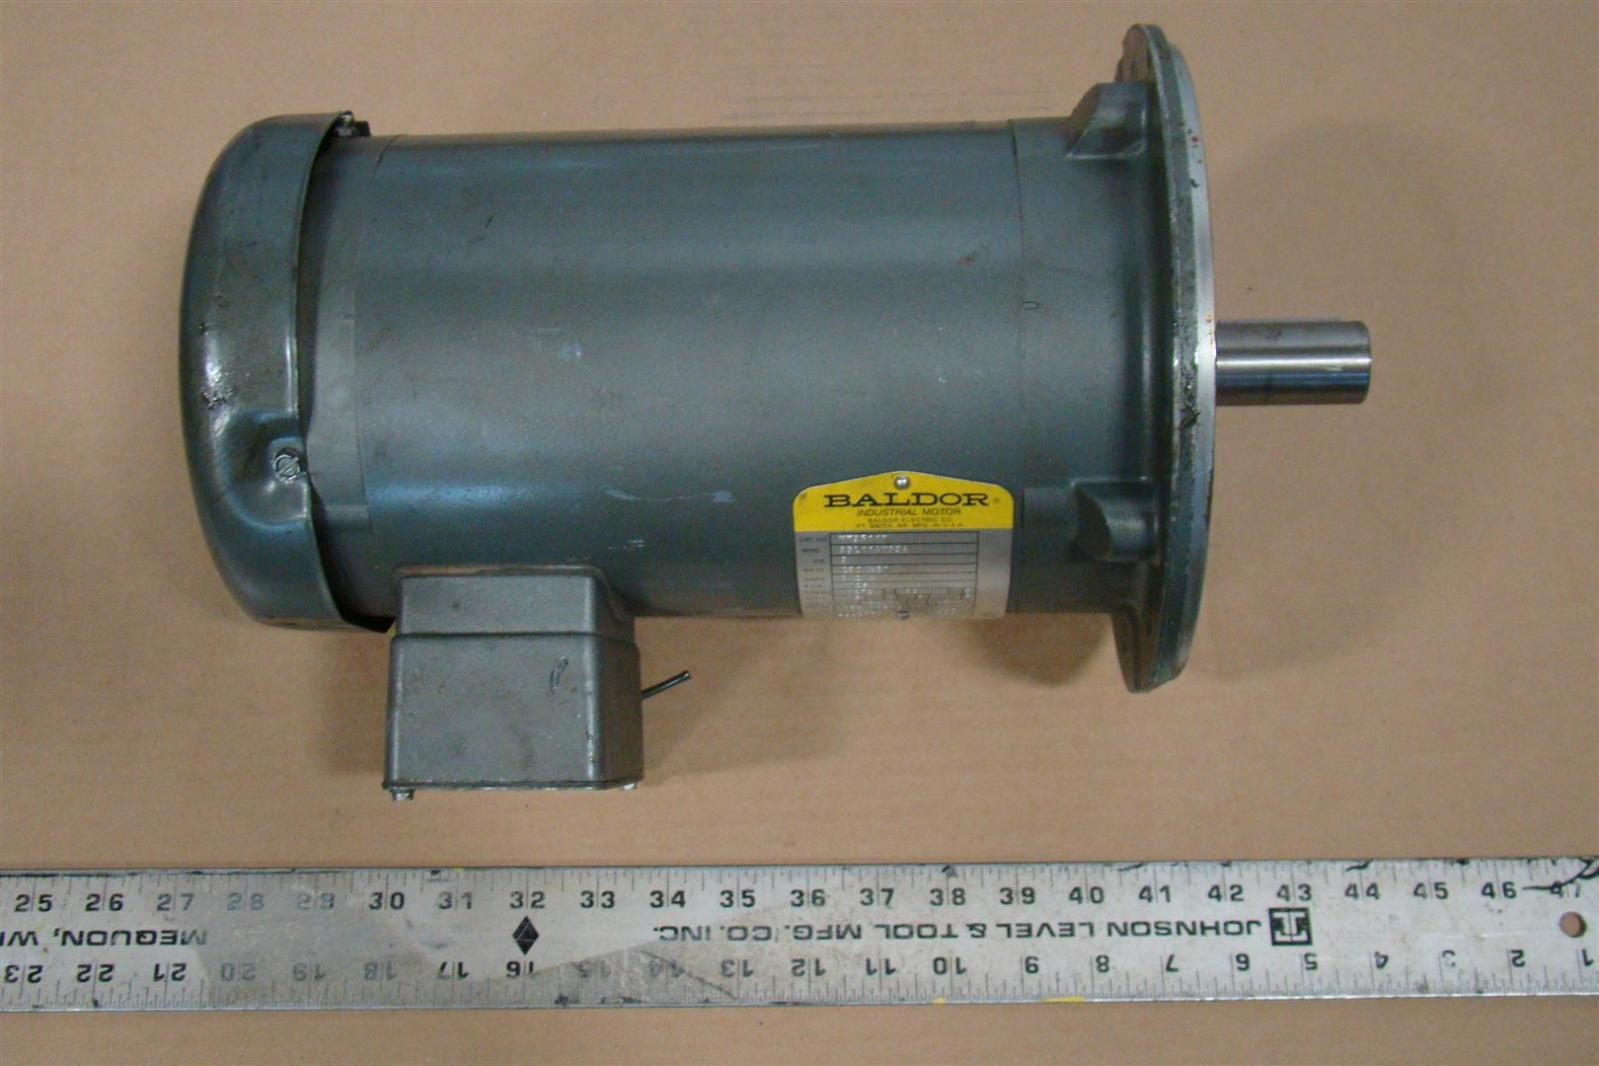 Baldor industrial motor 3hp 230 460v 3phase vm3611t ebay for Baldor industrial motor parts